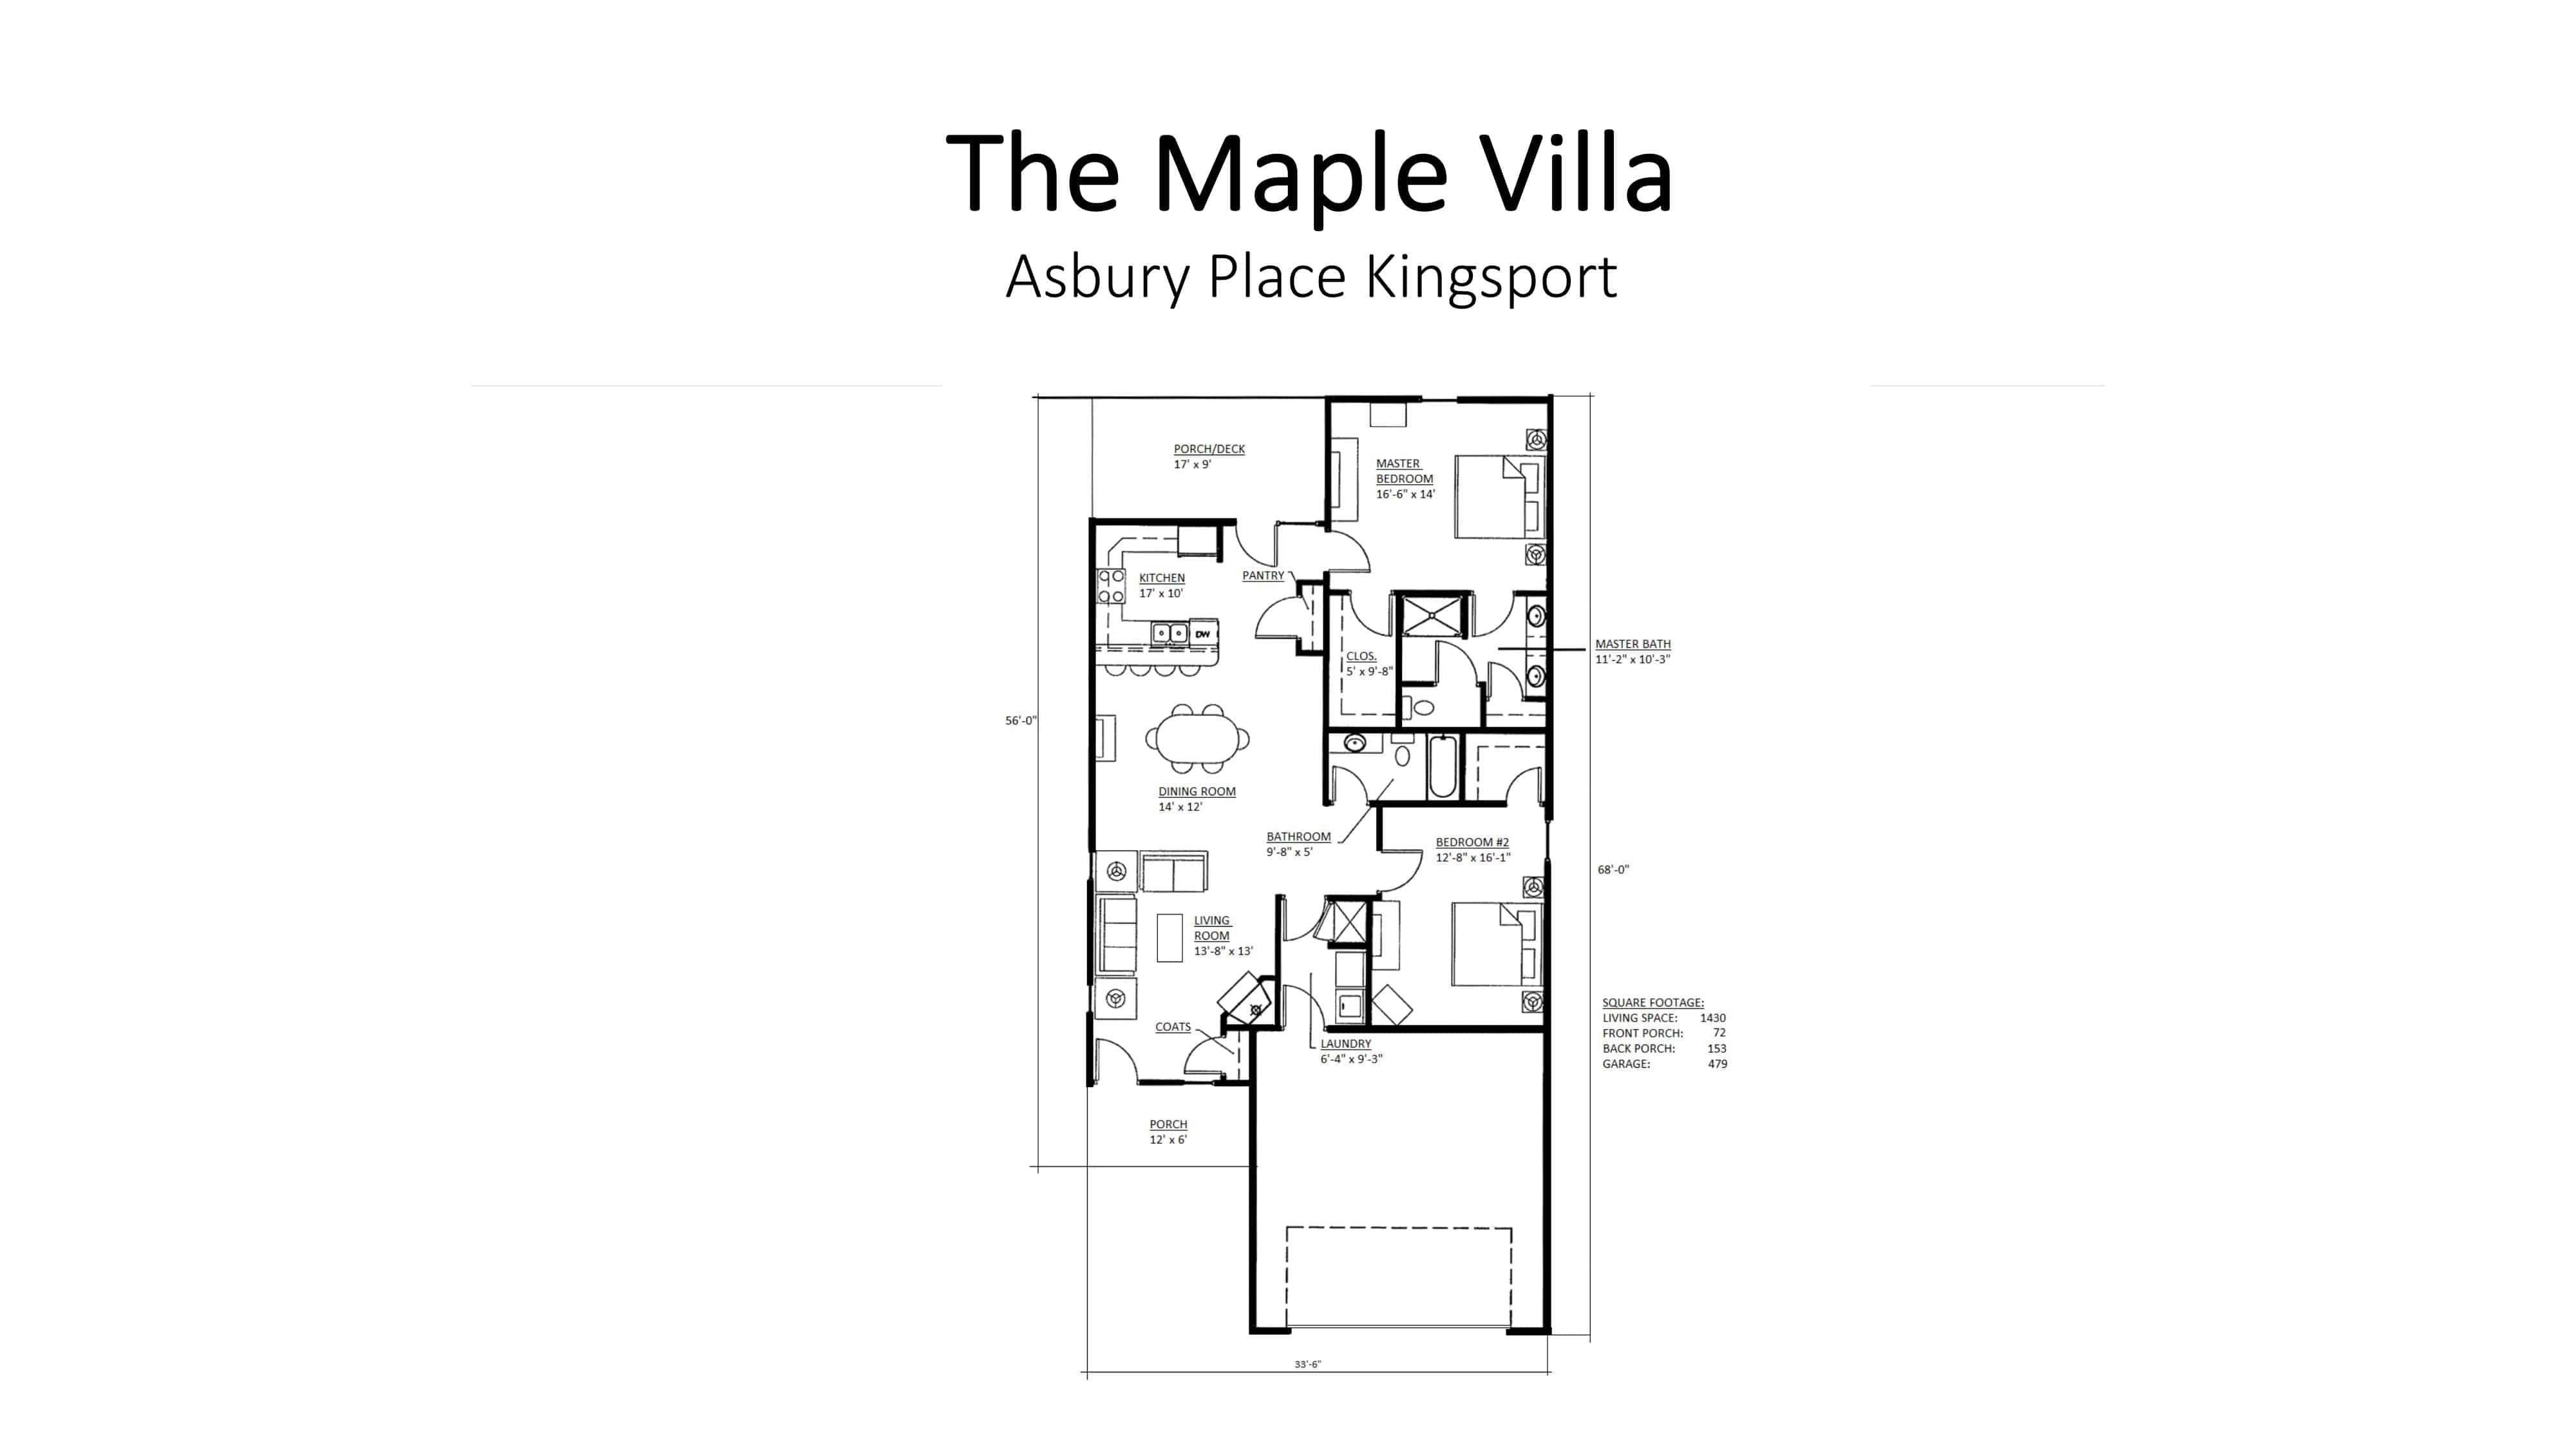 Asbury Place Kingsport The Maple Villa Floorplan